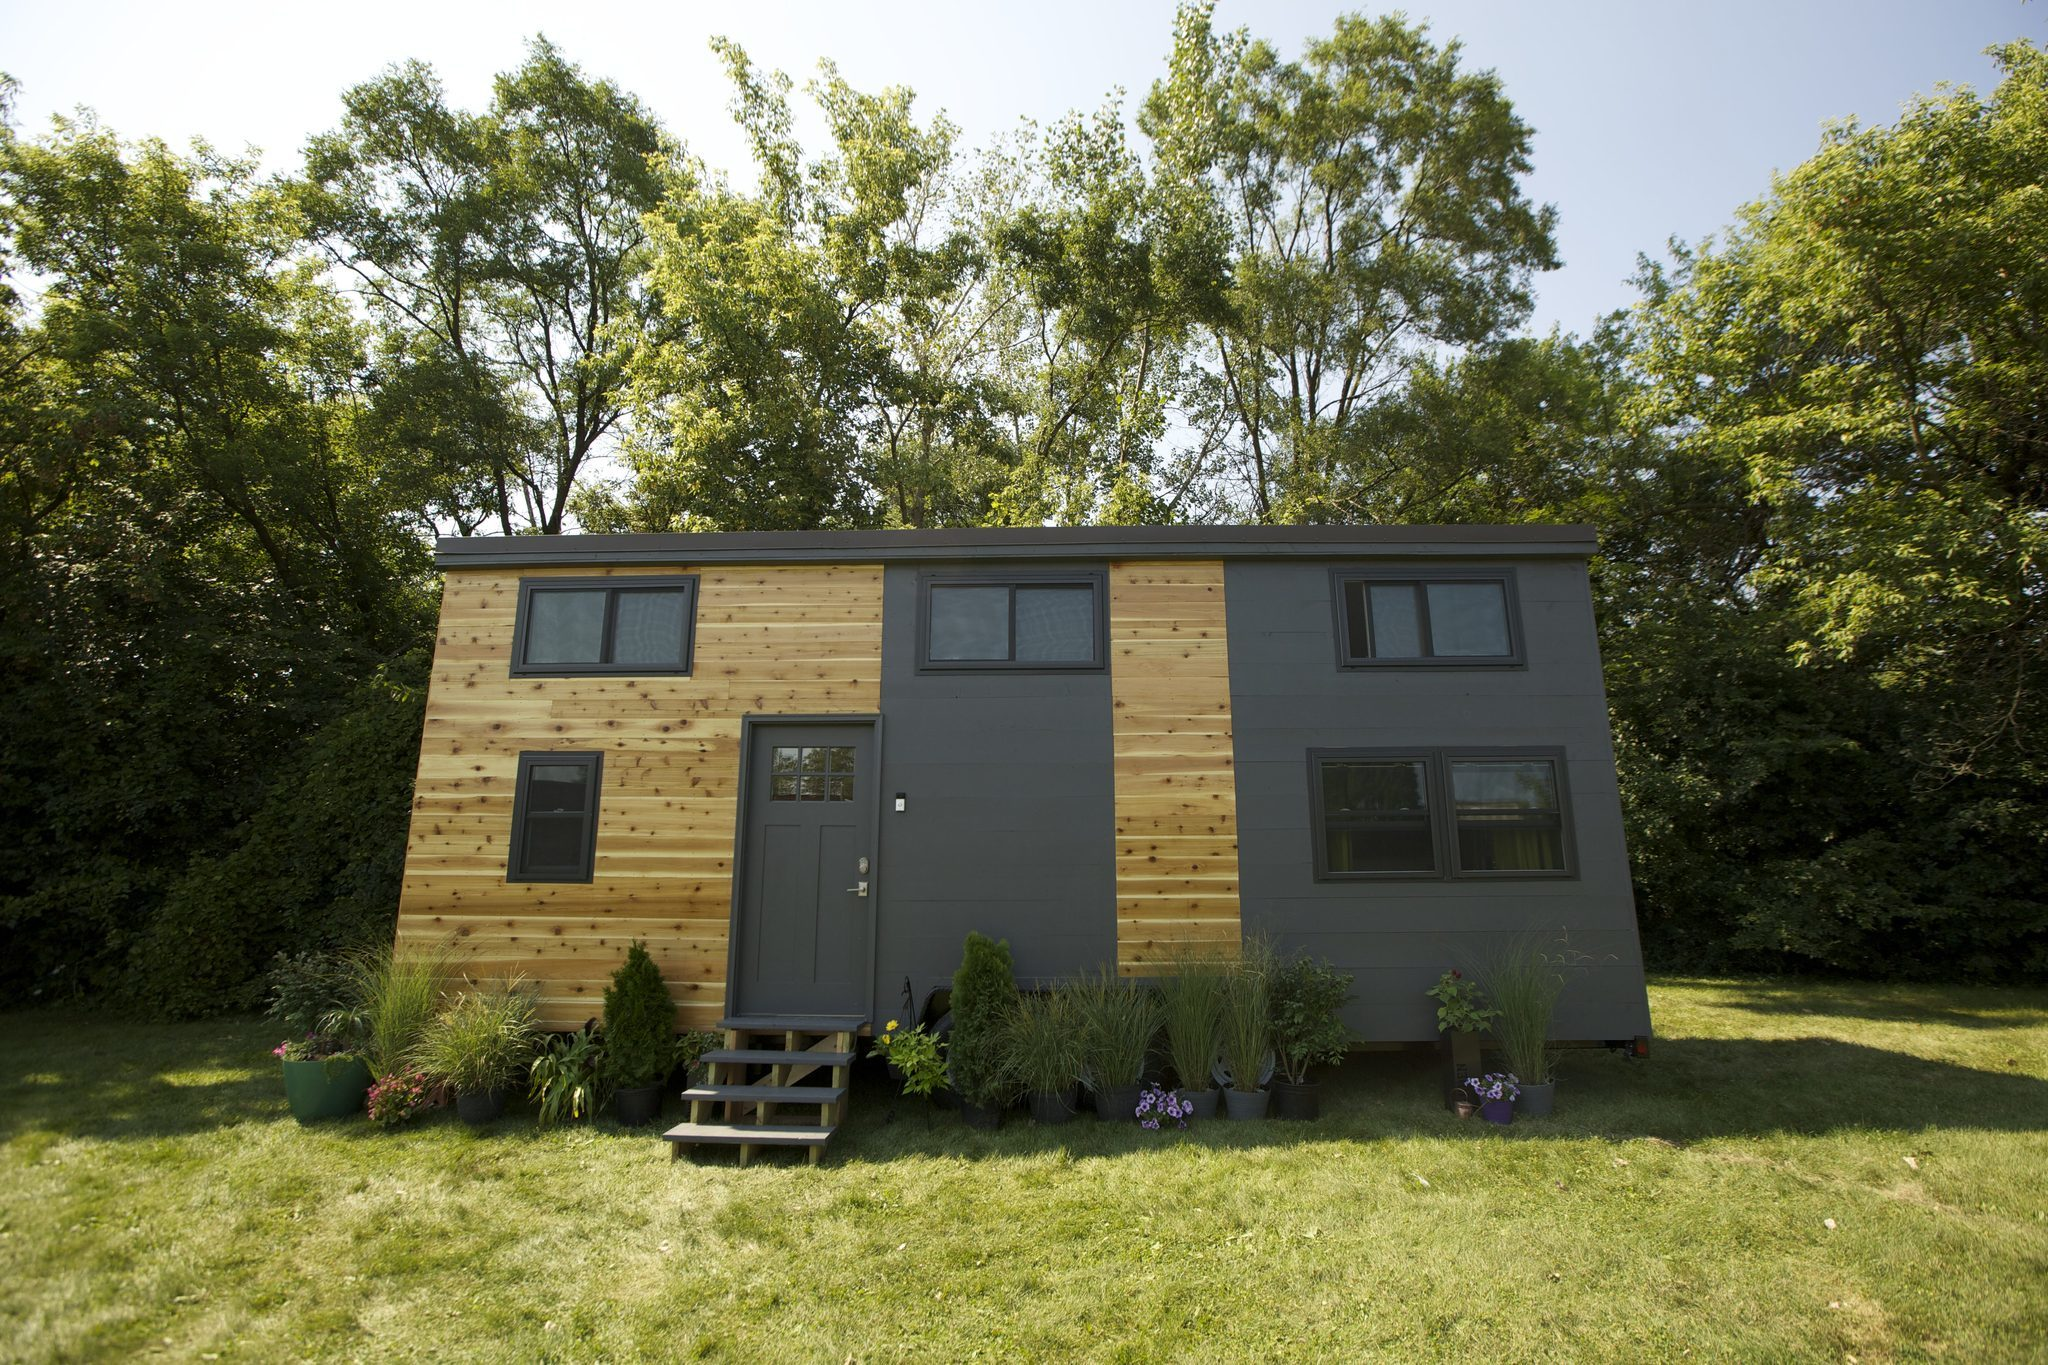 Long Grove couple's tech-savvy tiny house to be featured on FYI show